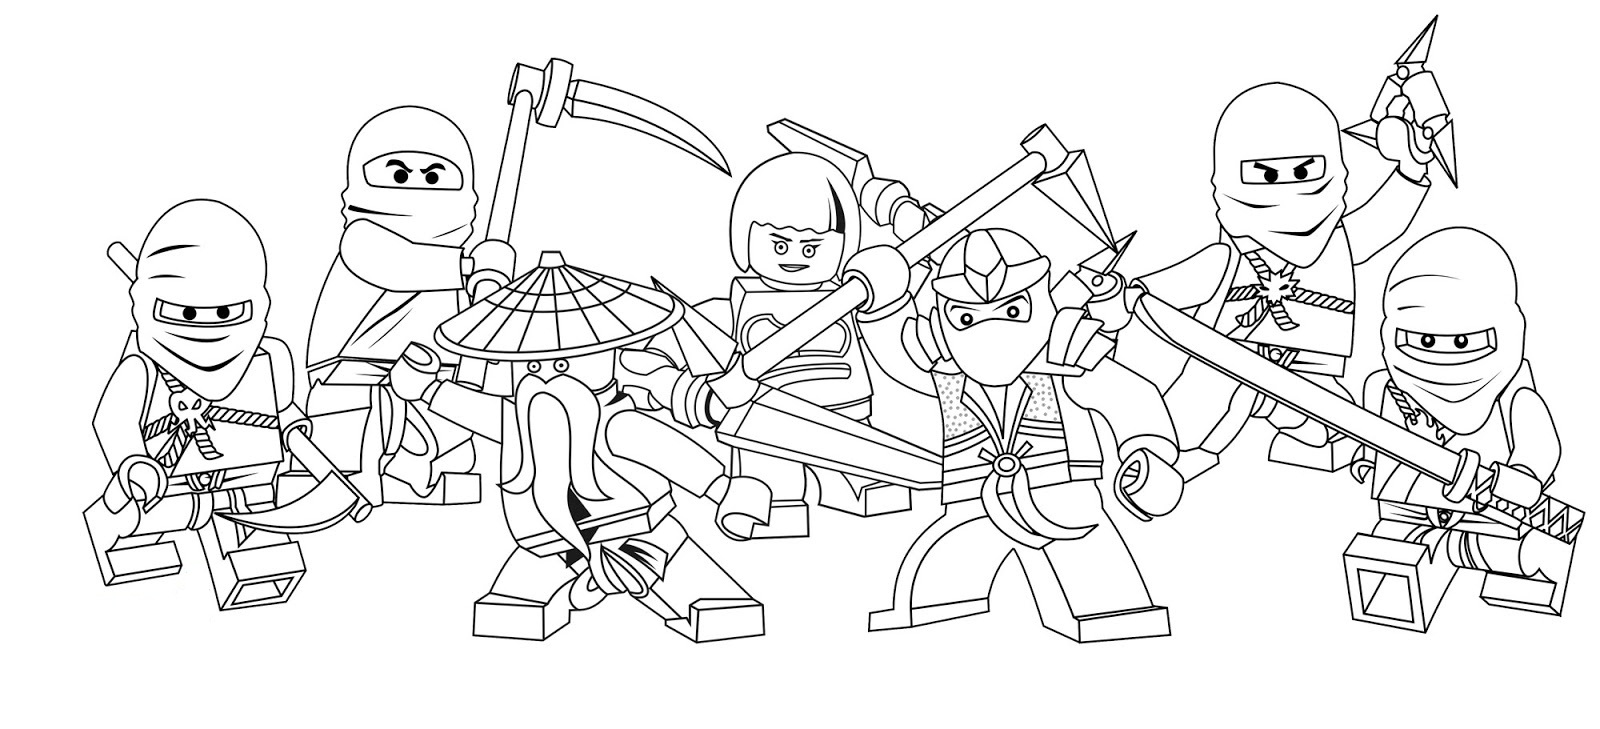 Painting pages to print - Ninjago Coloring Pages Printable